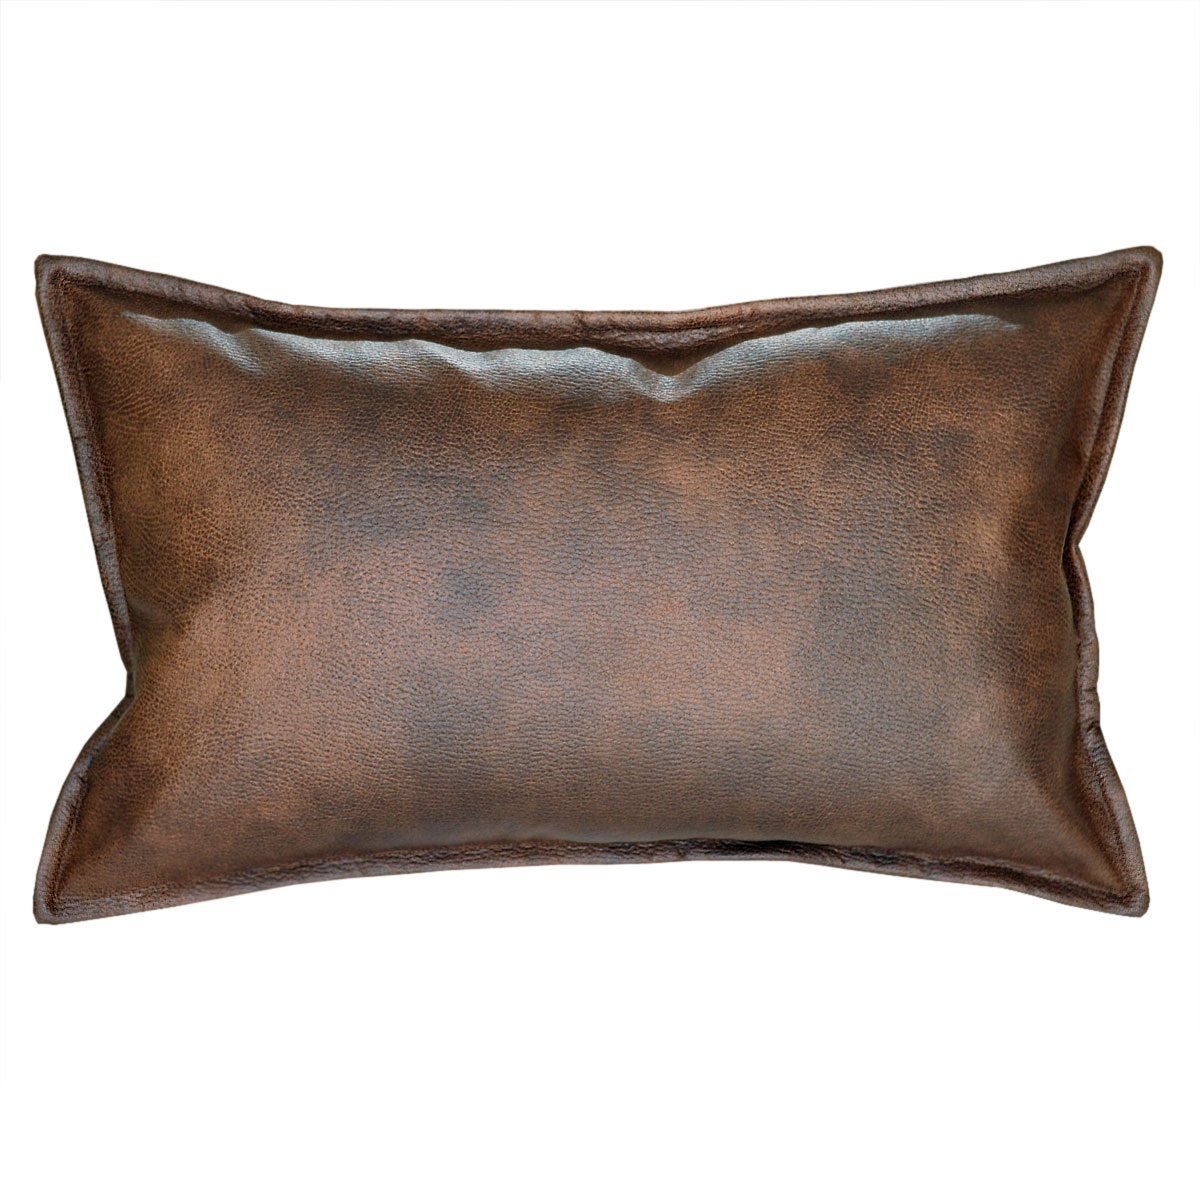 Eastwood Bison Cushion with Flange - 30x50cm